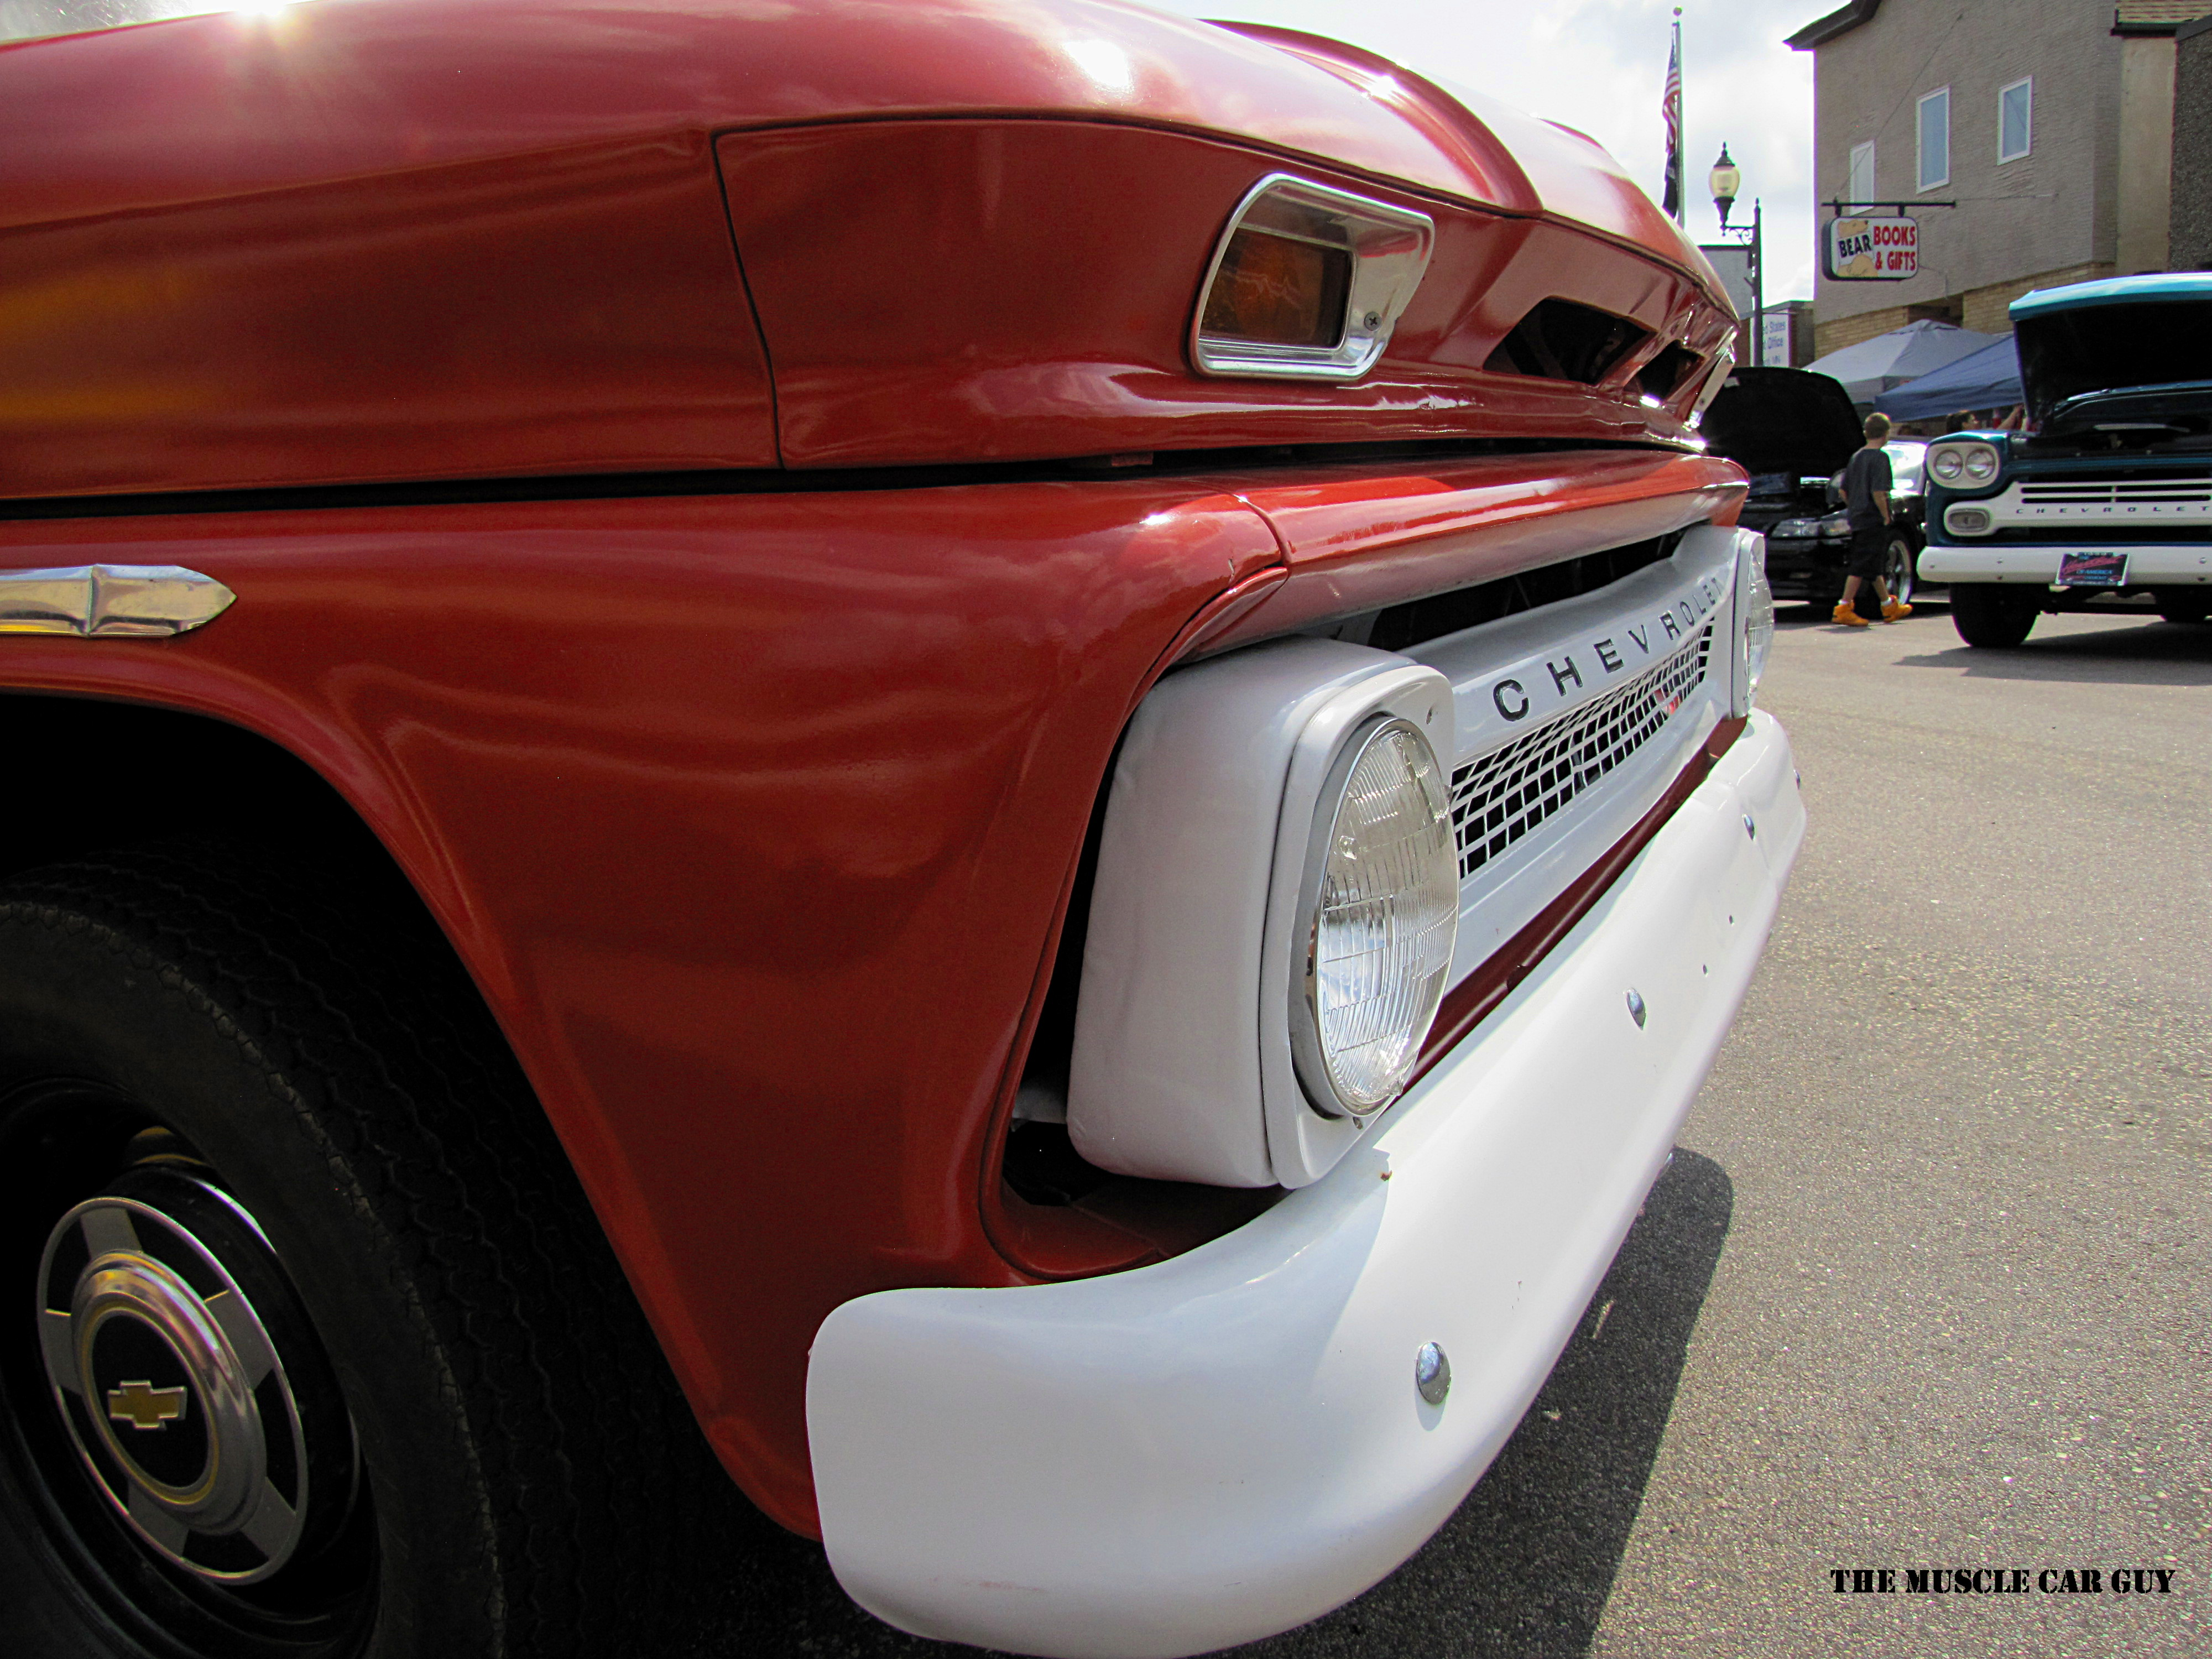 Red Chevrolet Pickup